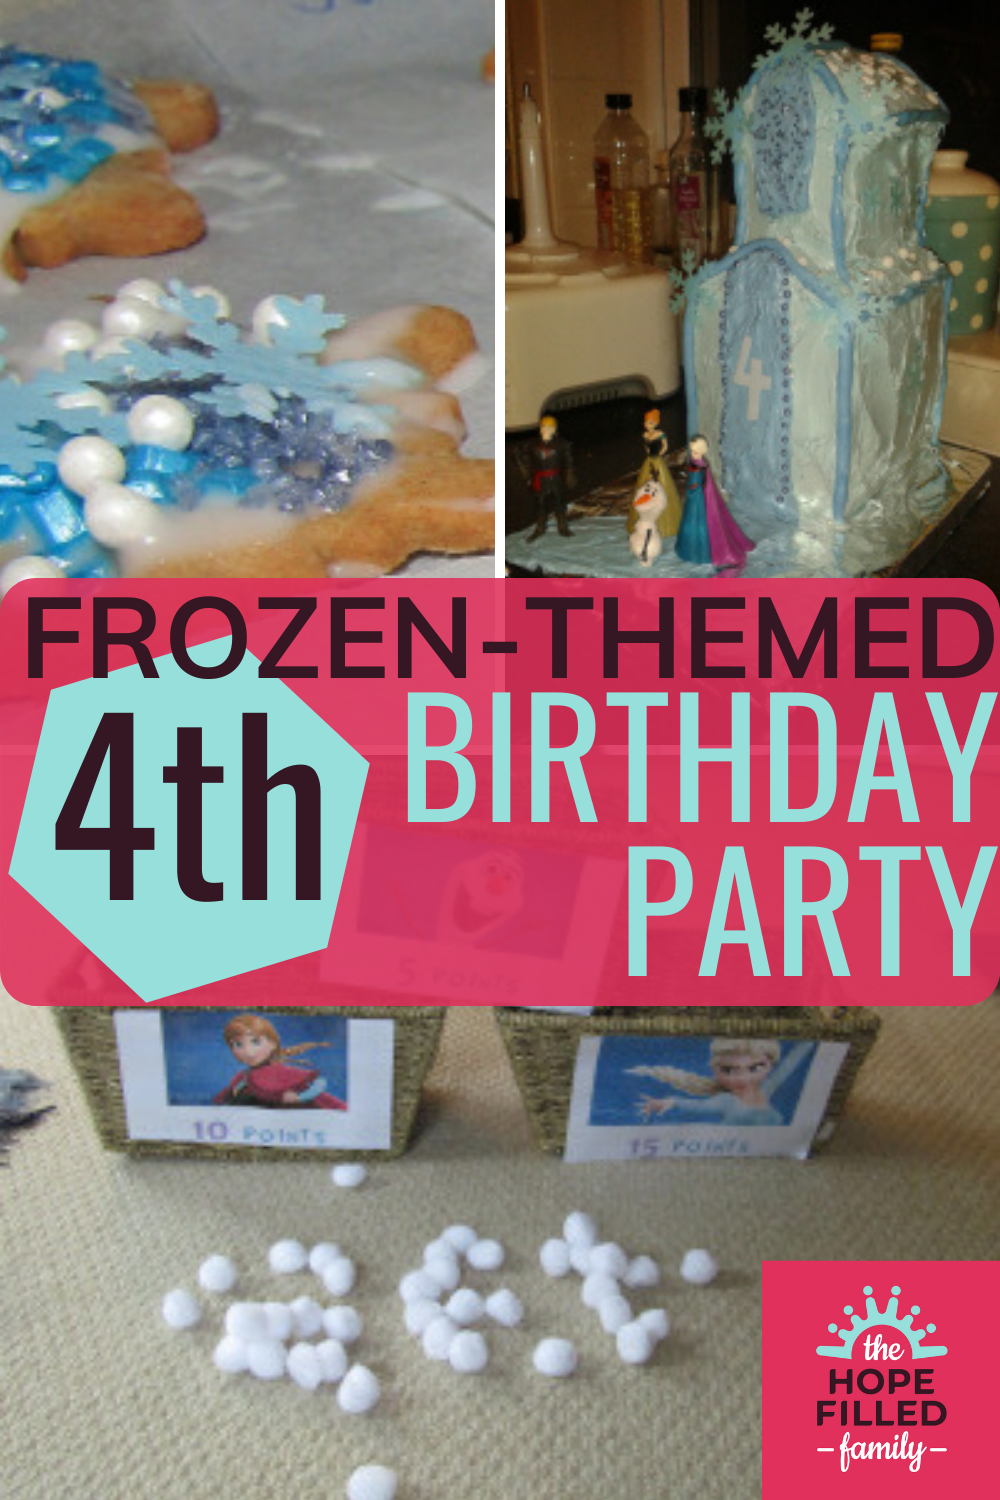 How to plan a Frozen-themed birthday party for a 4th birthday.